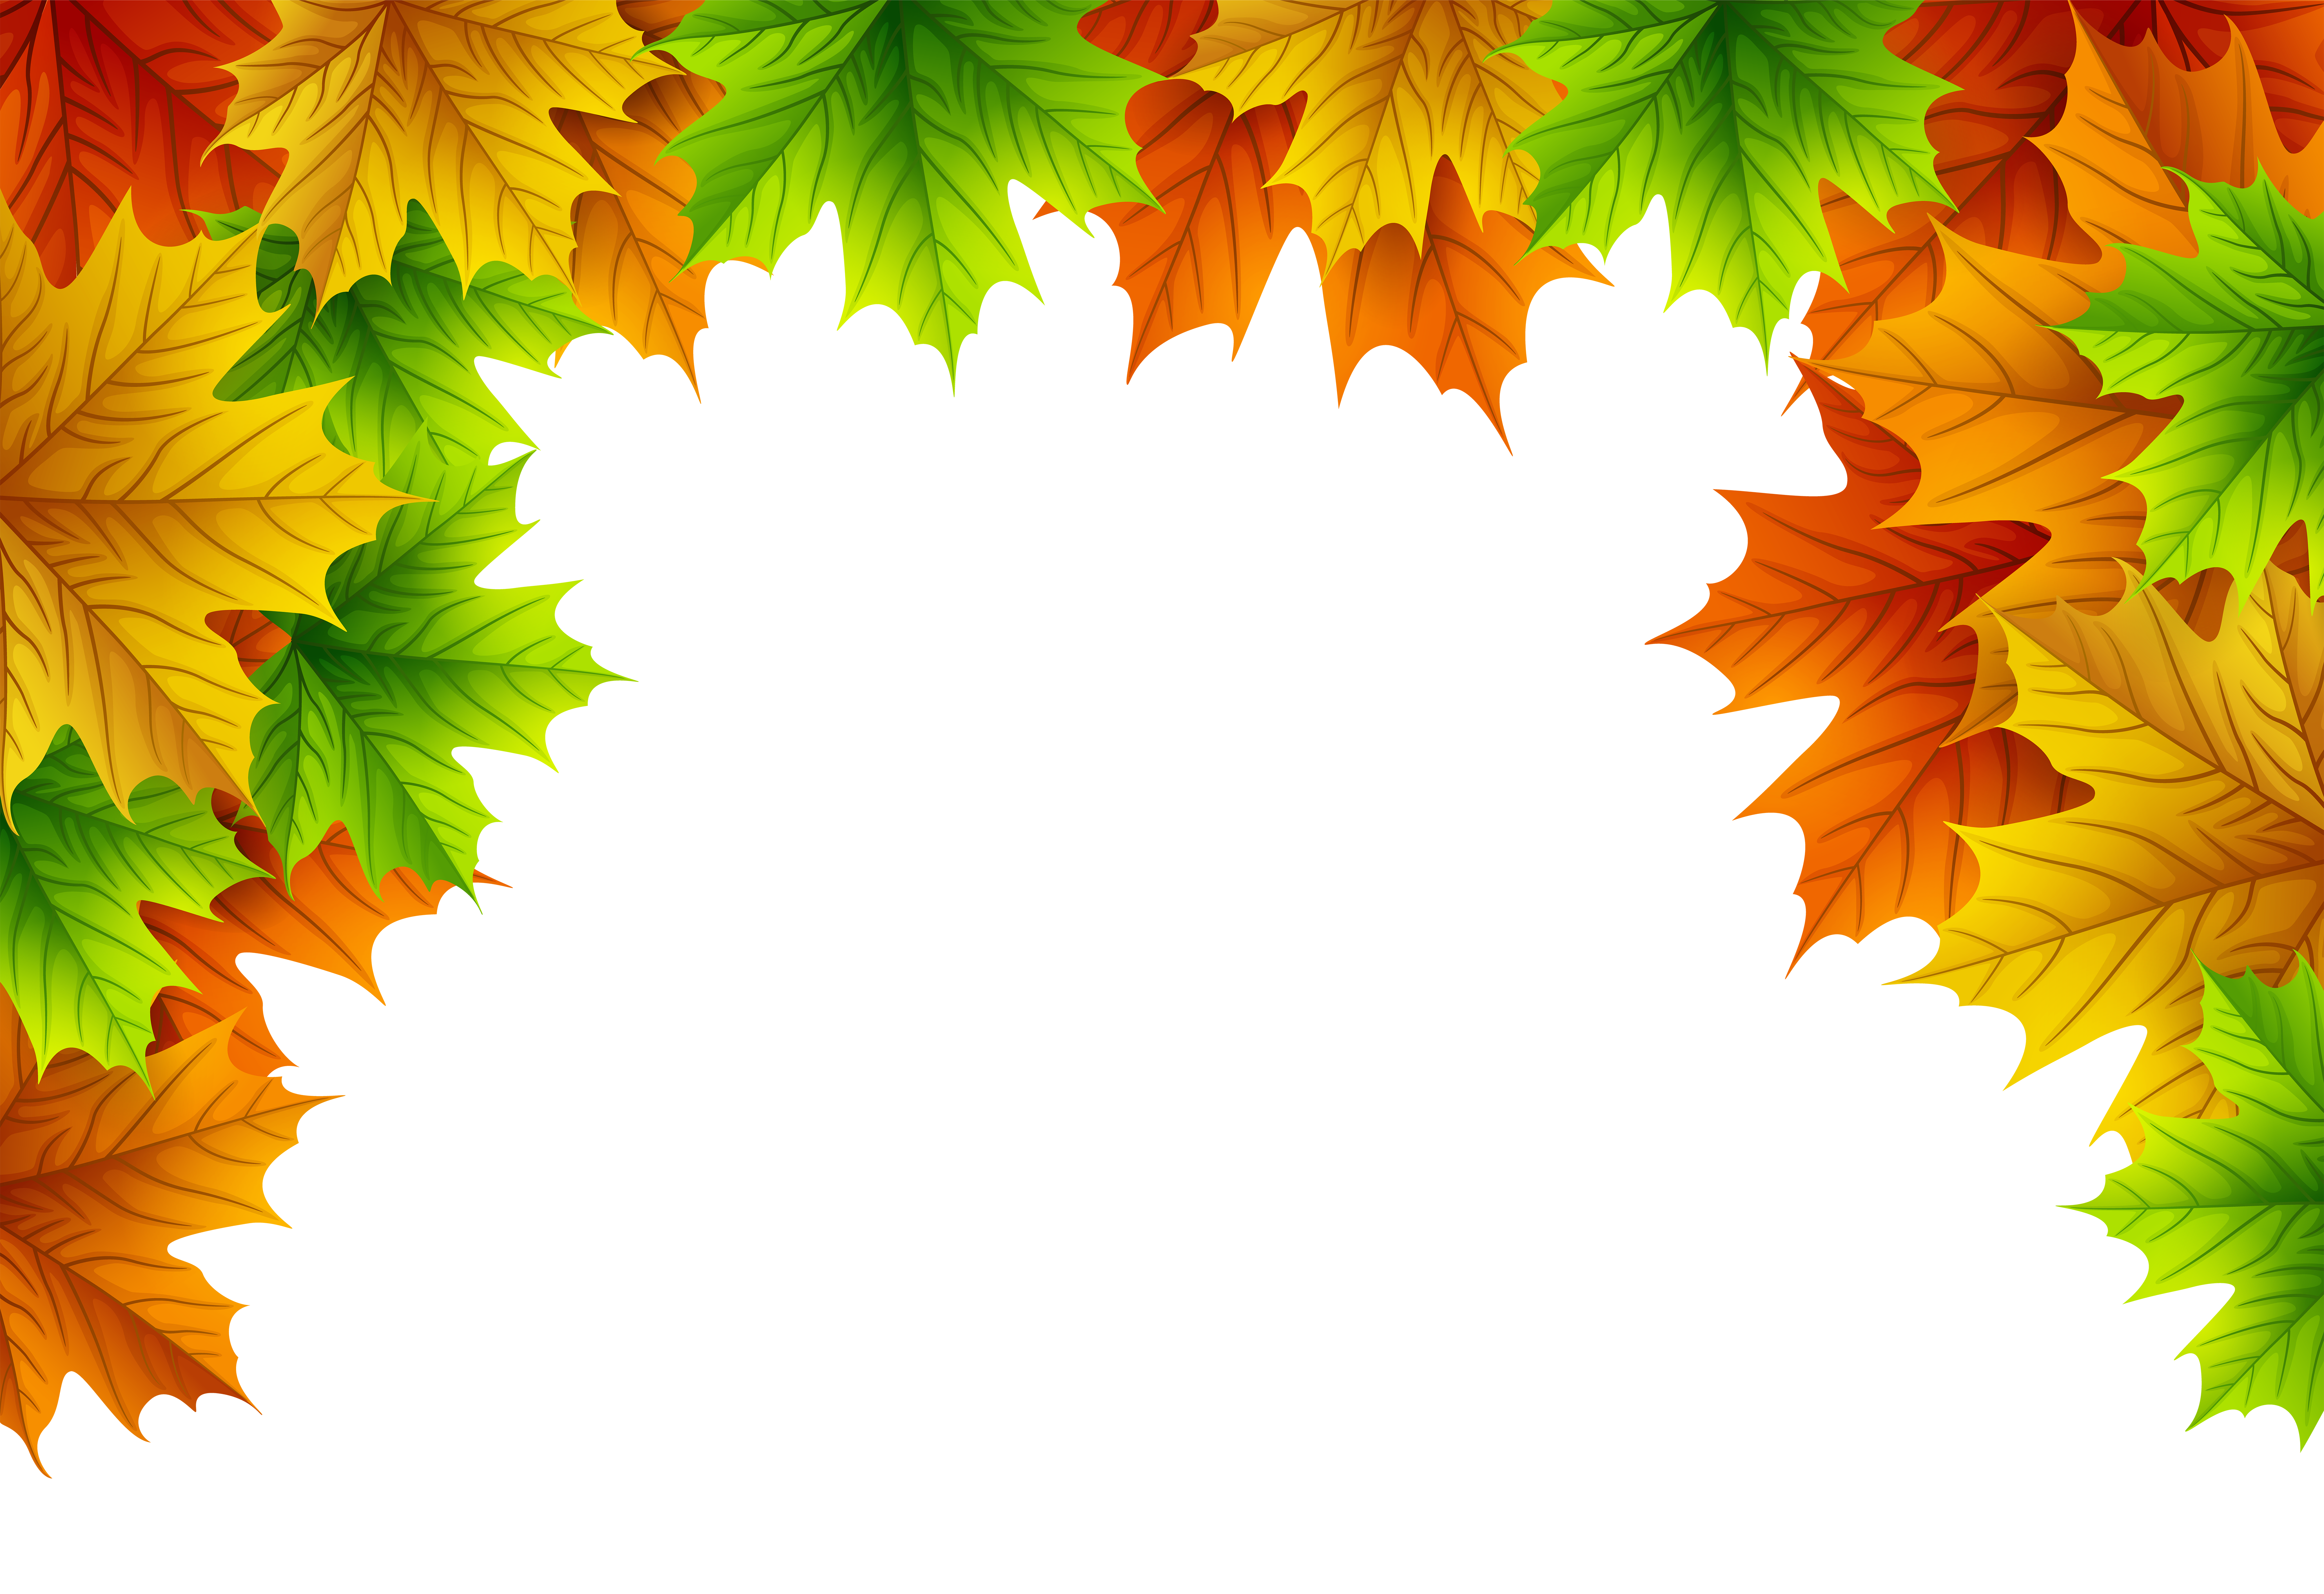 Fall leaves border png. Autumn decorative top image